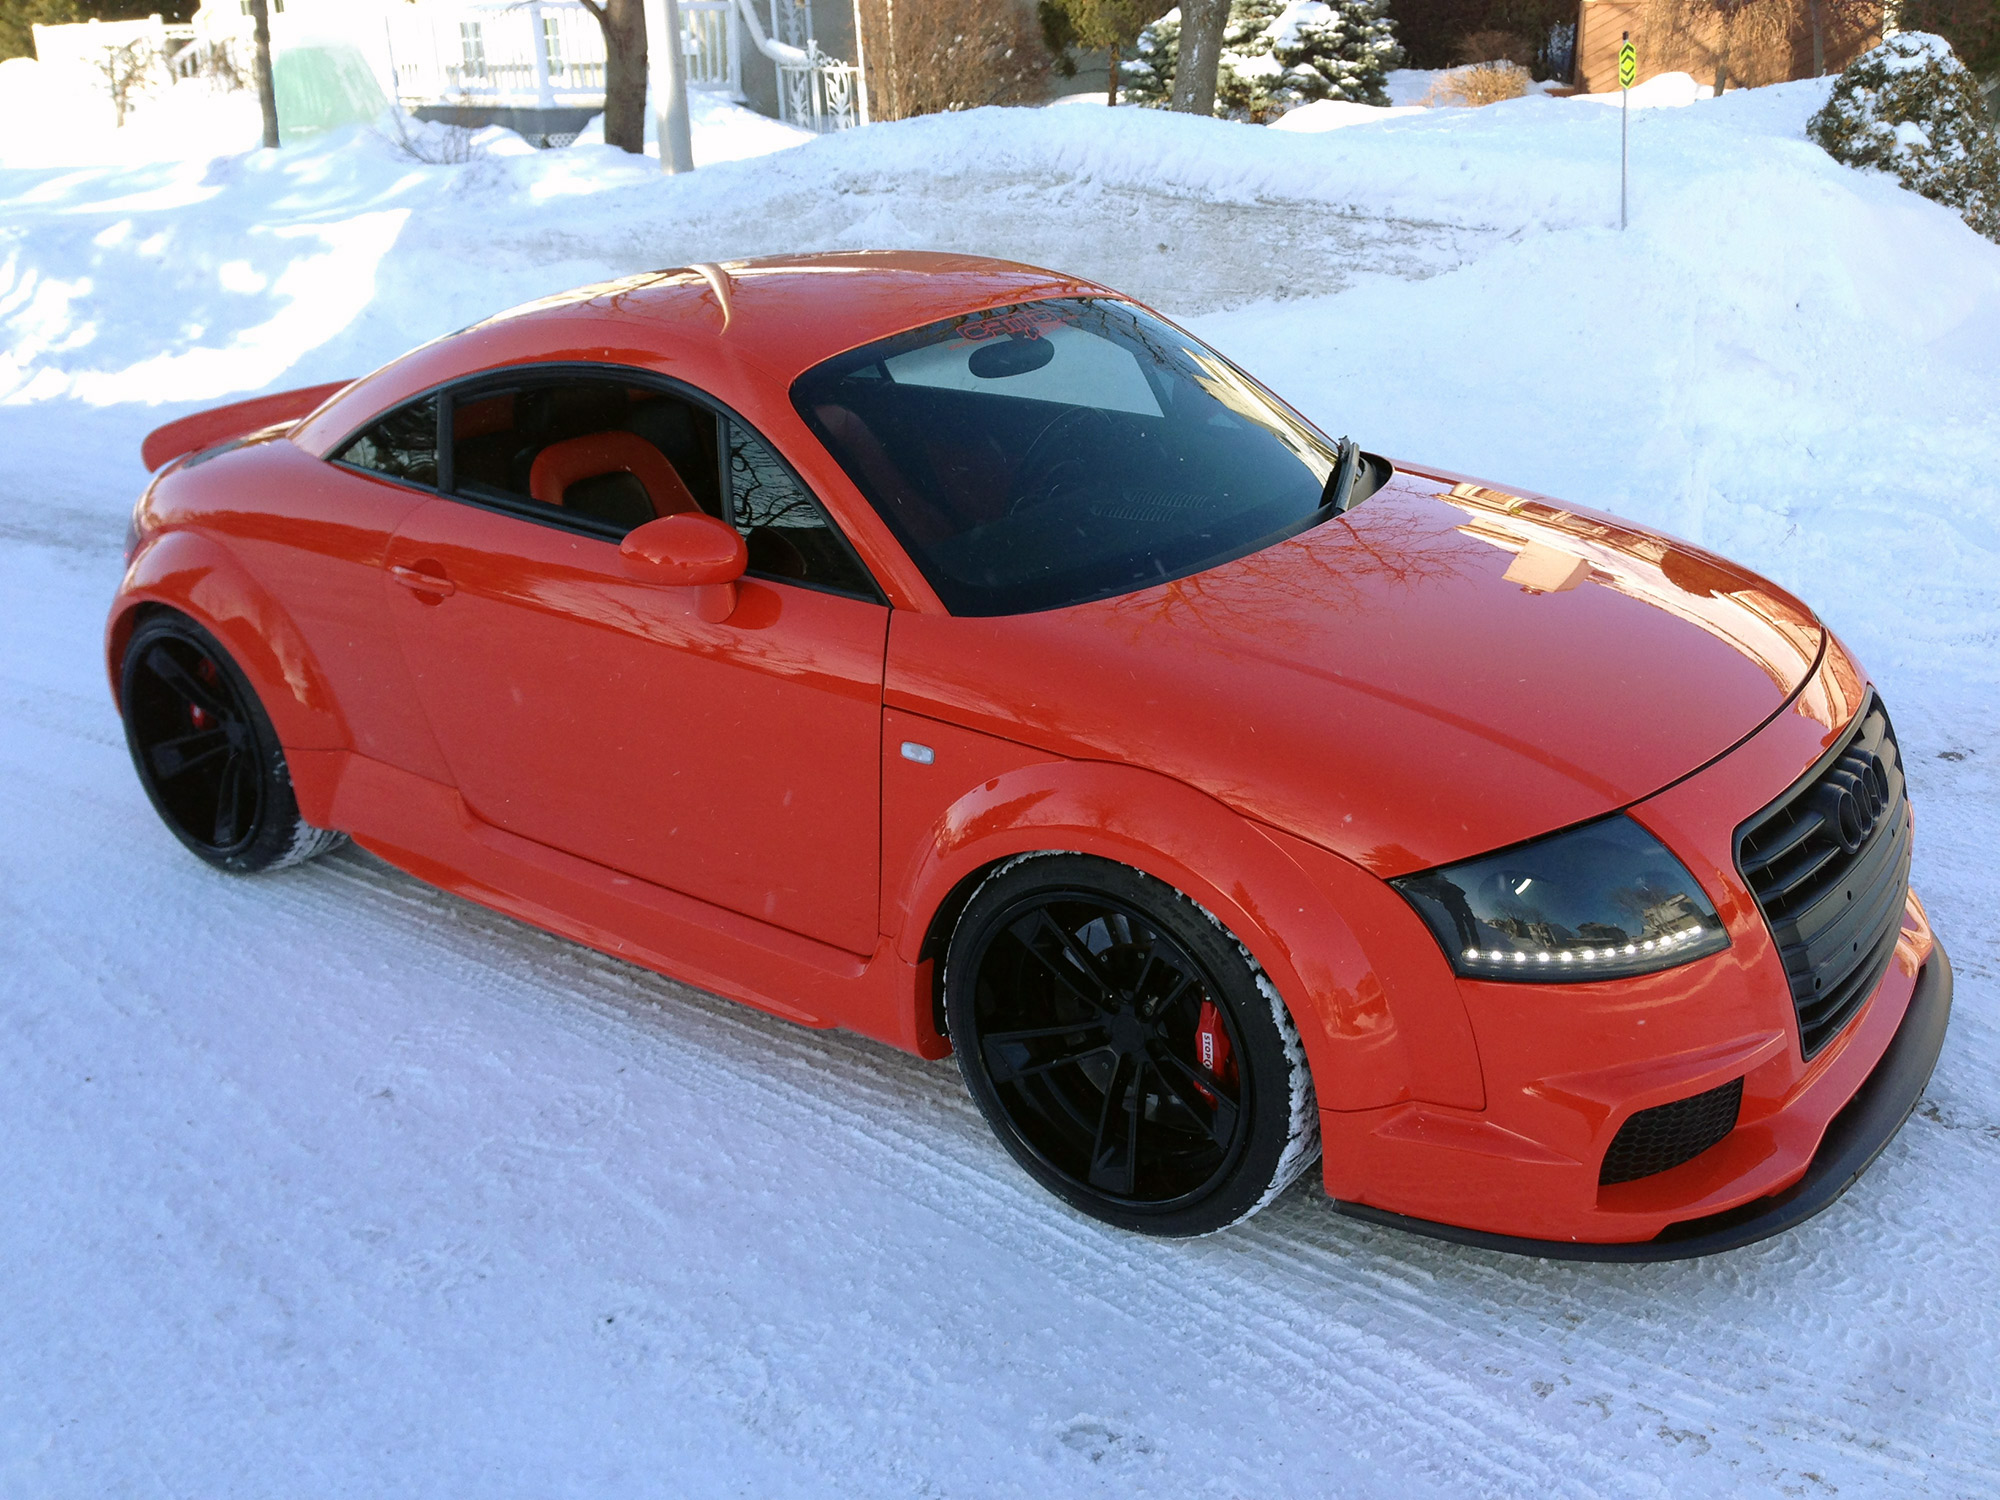 audi tt tuning in snow 1 audi tt mk1 8n tuning parts. Black Bedroom Furniture Sets. Home Design Ideas